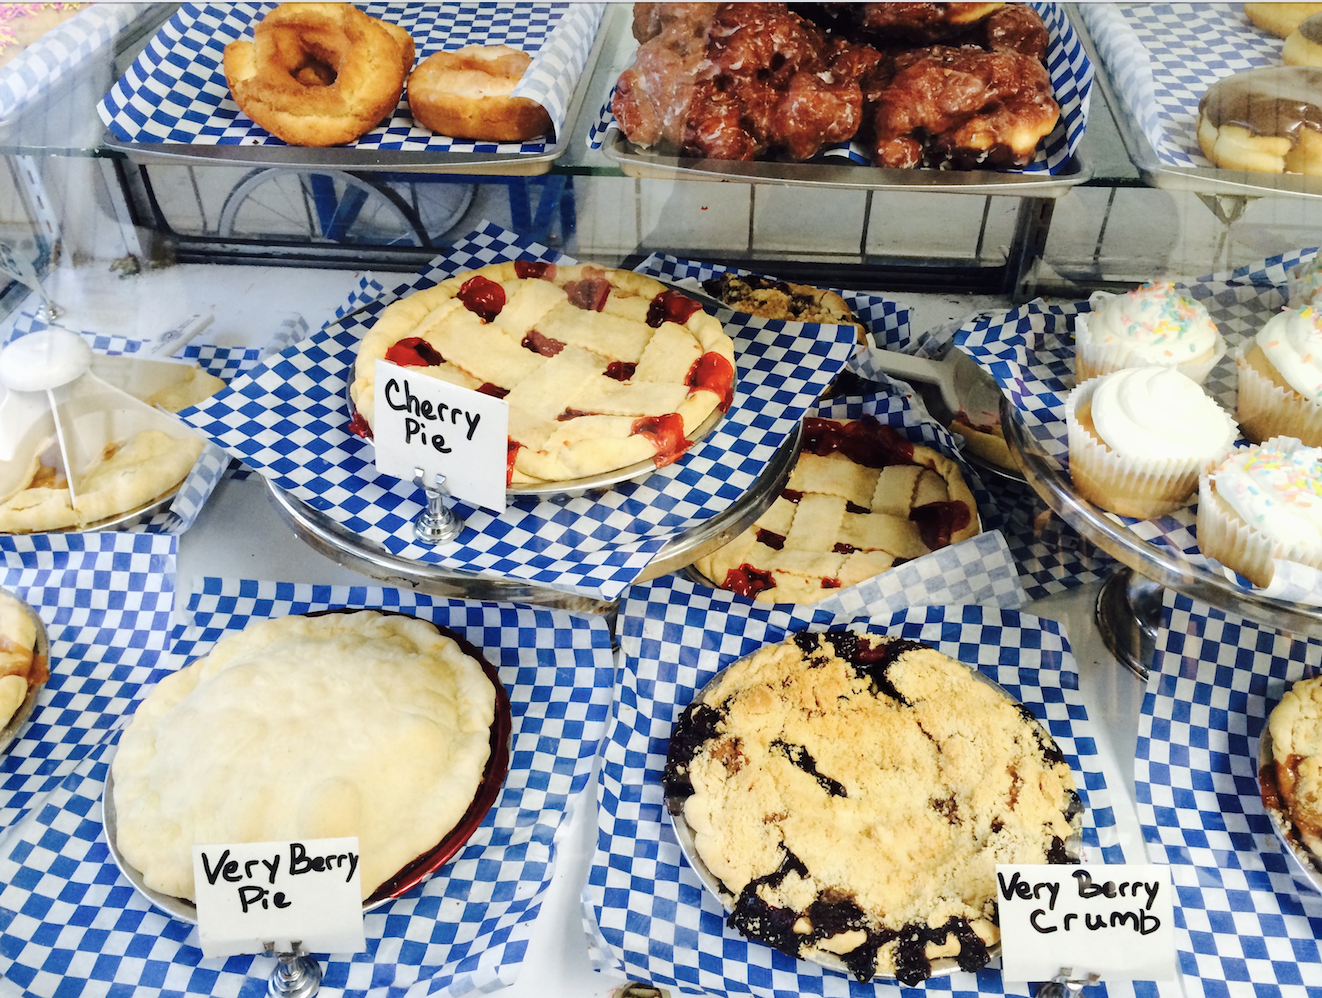 Pies from a bakery in Seattle.They know crust!